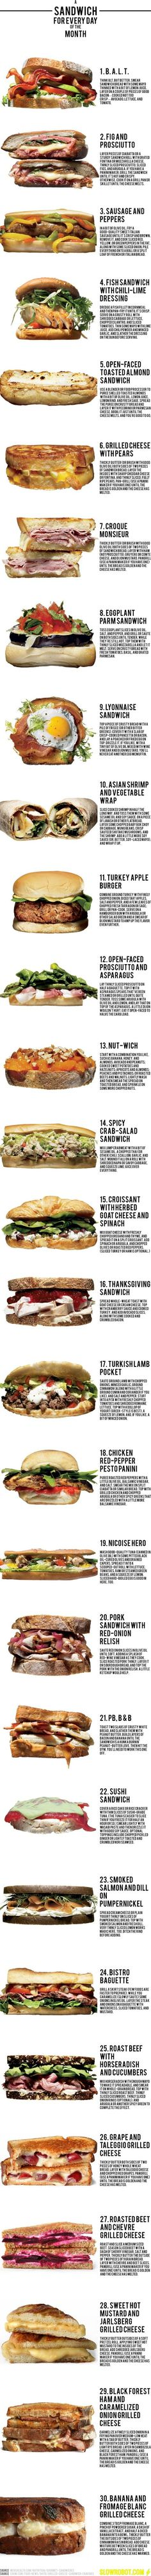 a sandwich for every day of the month - Take out all the disgusting mayo and nasty shellfish and I'm good!